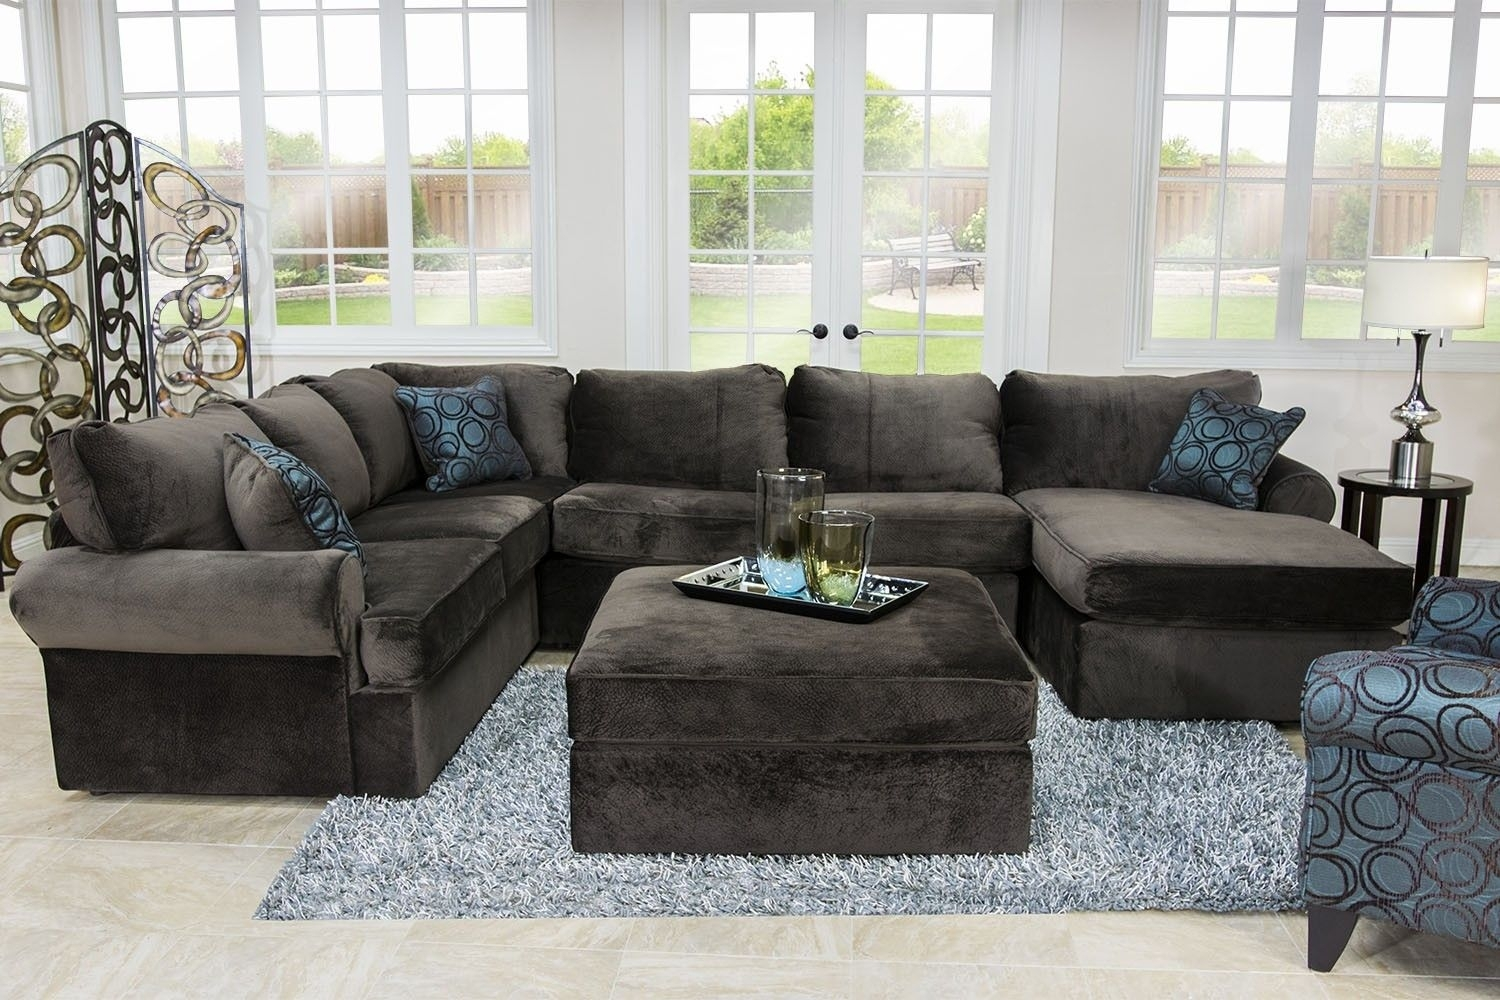 Napa Chocolate Right-Facing Sectional - Sectionals - Living Room inside Marcus Chocolate 6 Piece Sectionals With Power Headrest and Usb (Image 14 of 30)